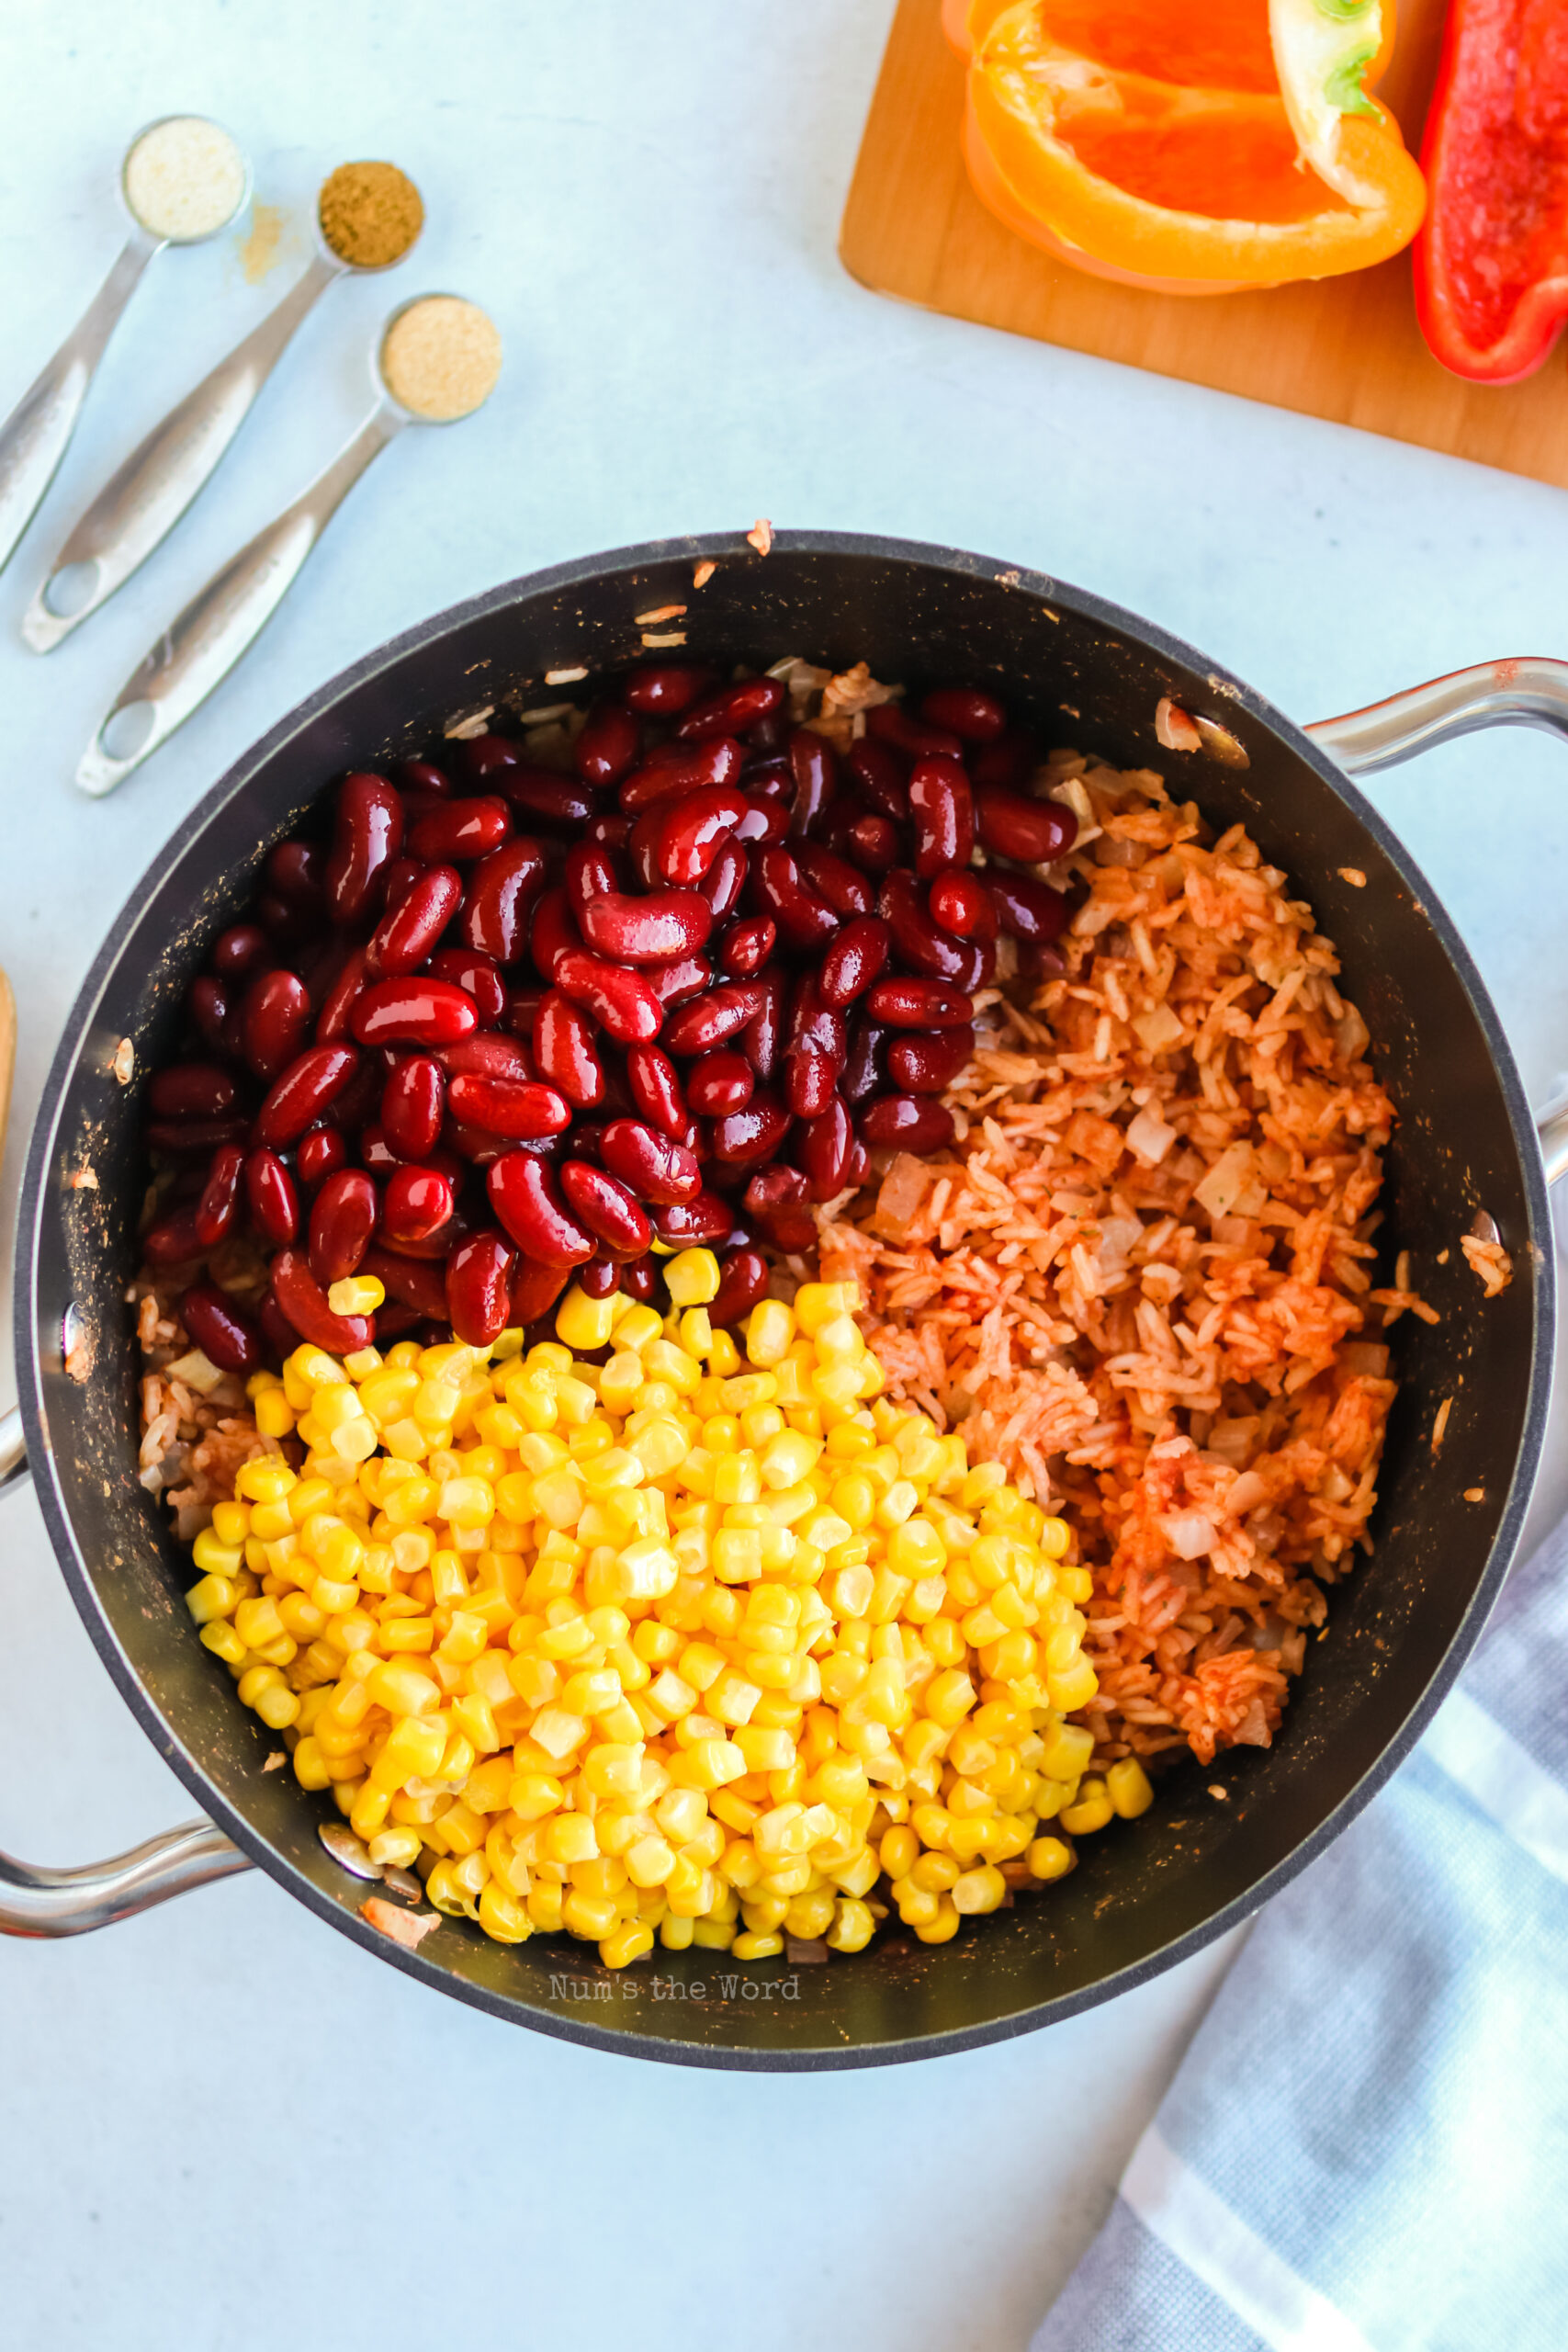 Rice is cooked with beans, corn and seasonings added.